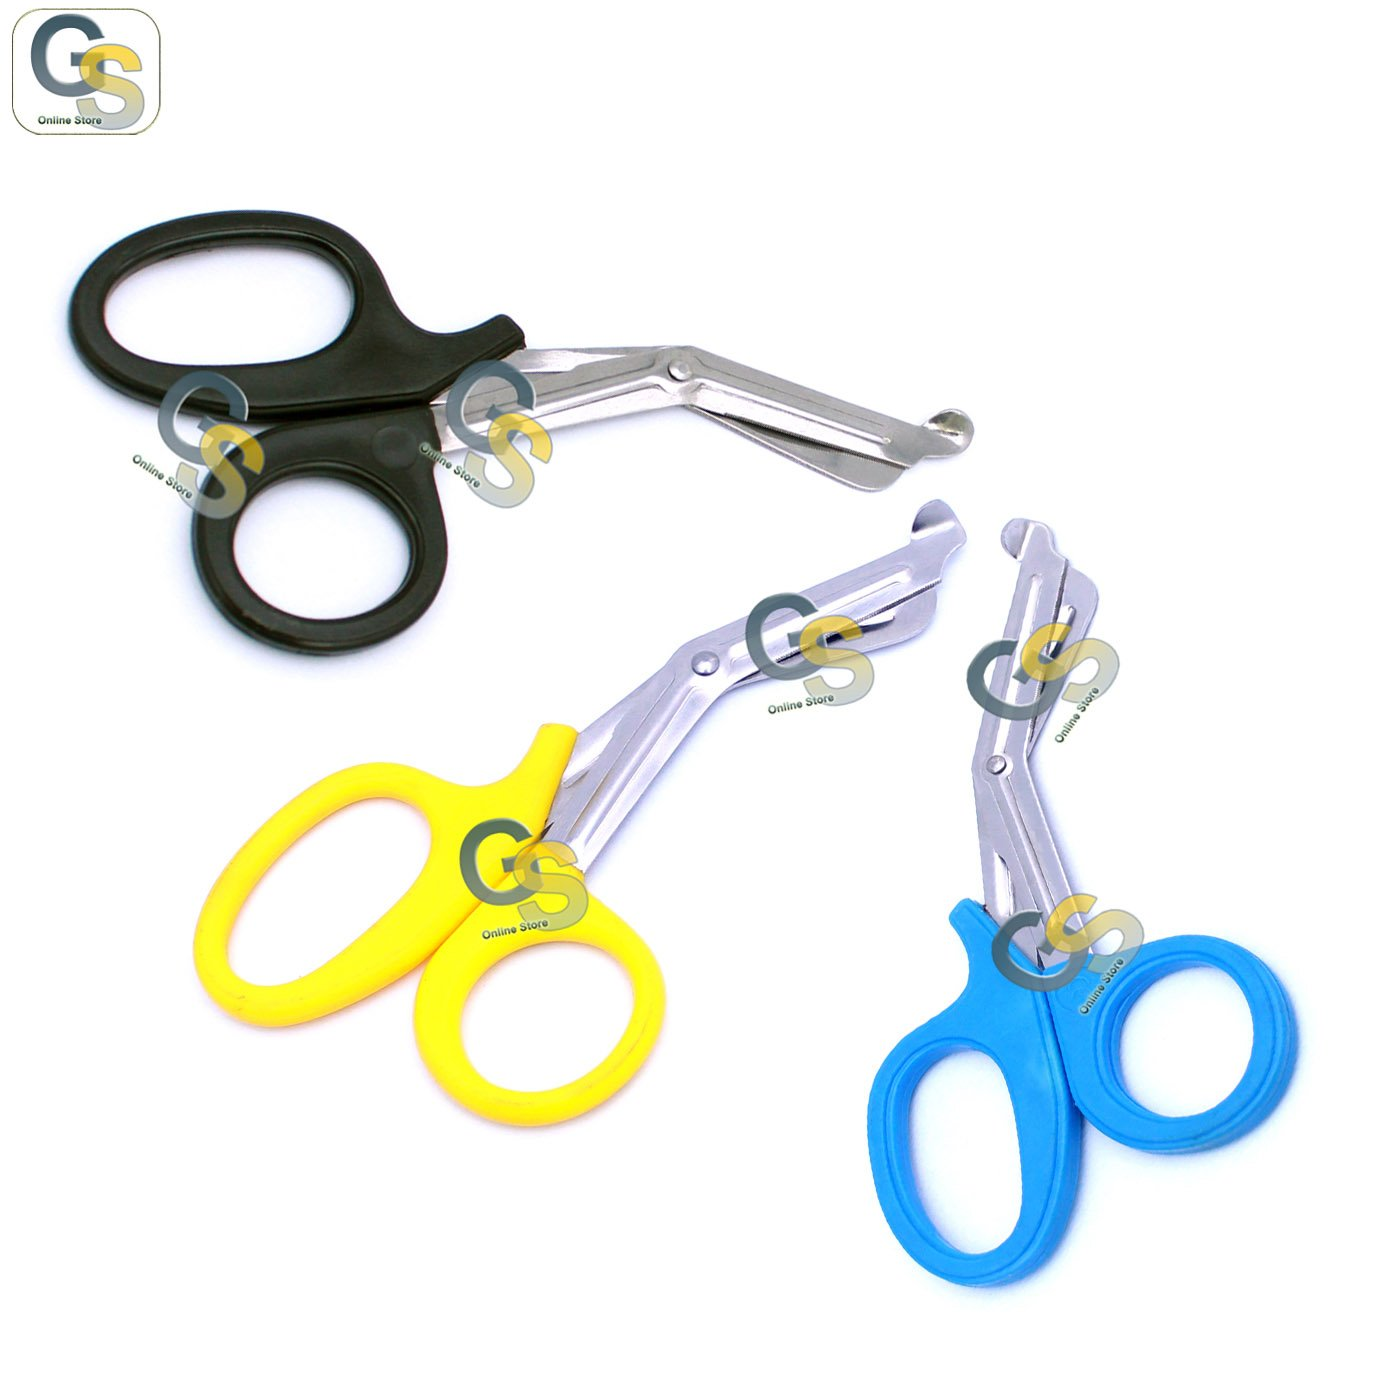 G.S 3 PCS (BLACK & YELLOW & SKY BLUE) PARAMEDIC UTILITY BANDAGE TRAUMA EMT EMS SHEARS SCISSORS 7.25 INCH STAINLESS STEEL